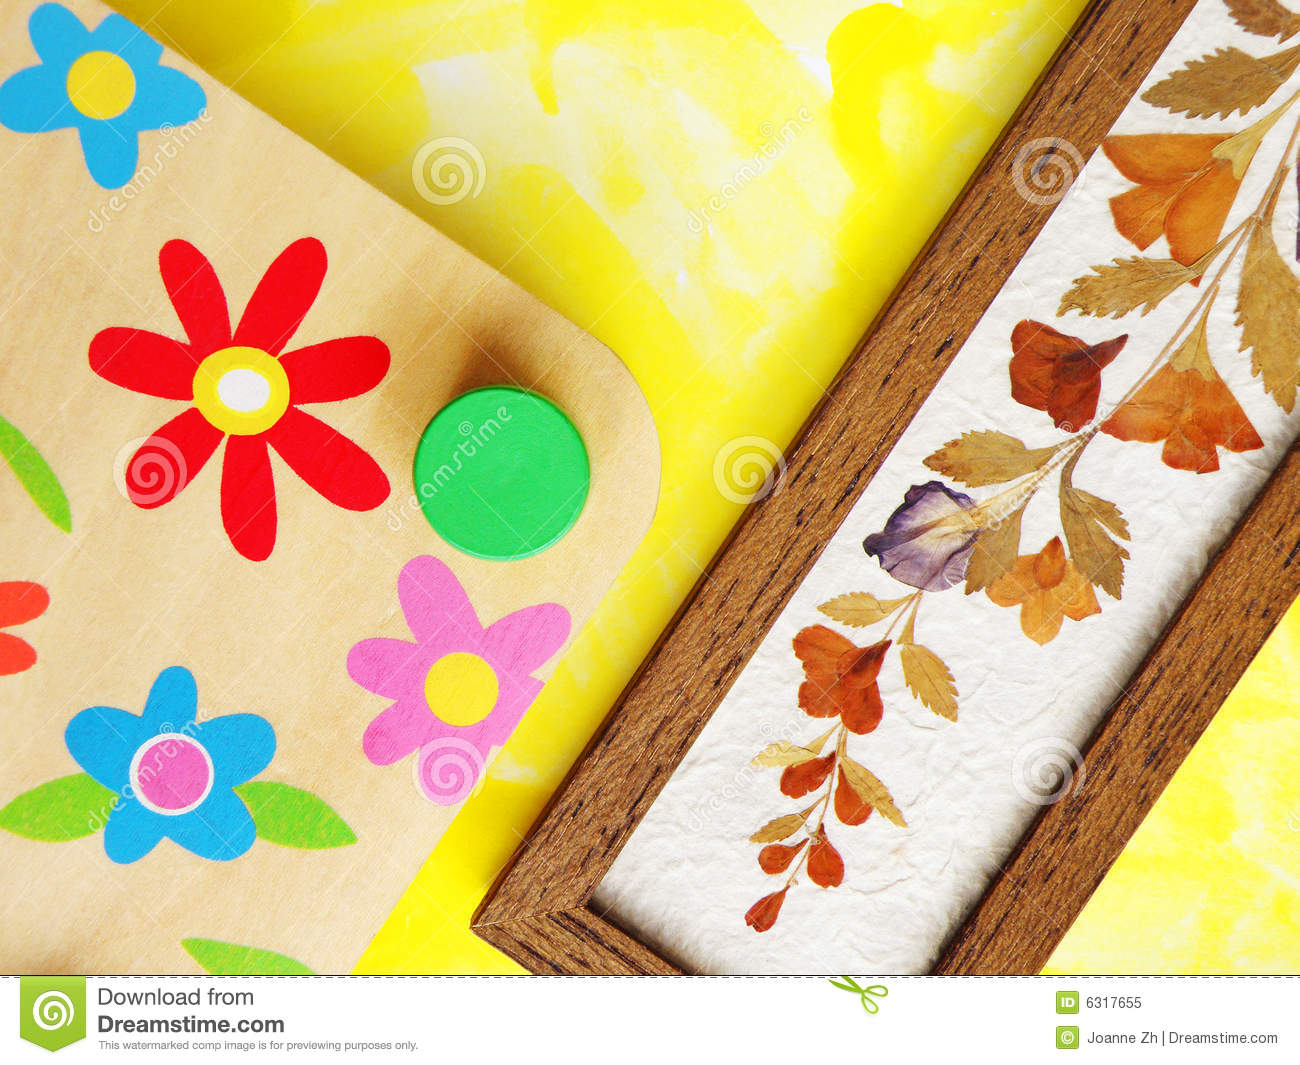 Hobby Plant Press And Dried Flowers Royalty Free Stock Image